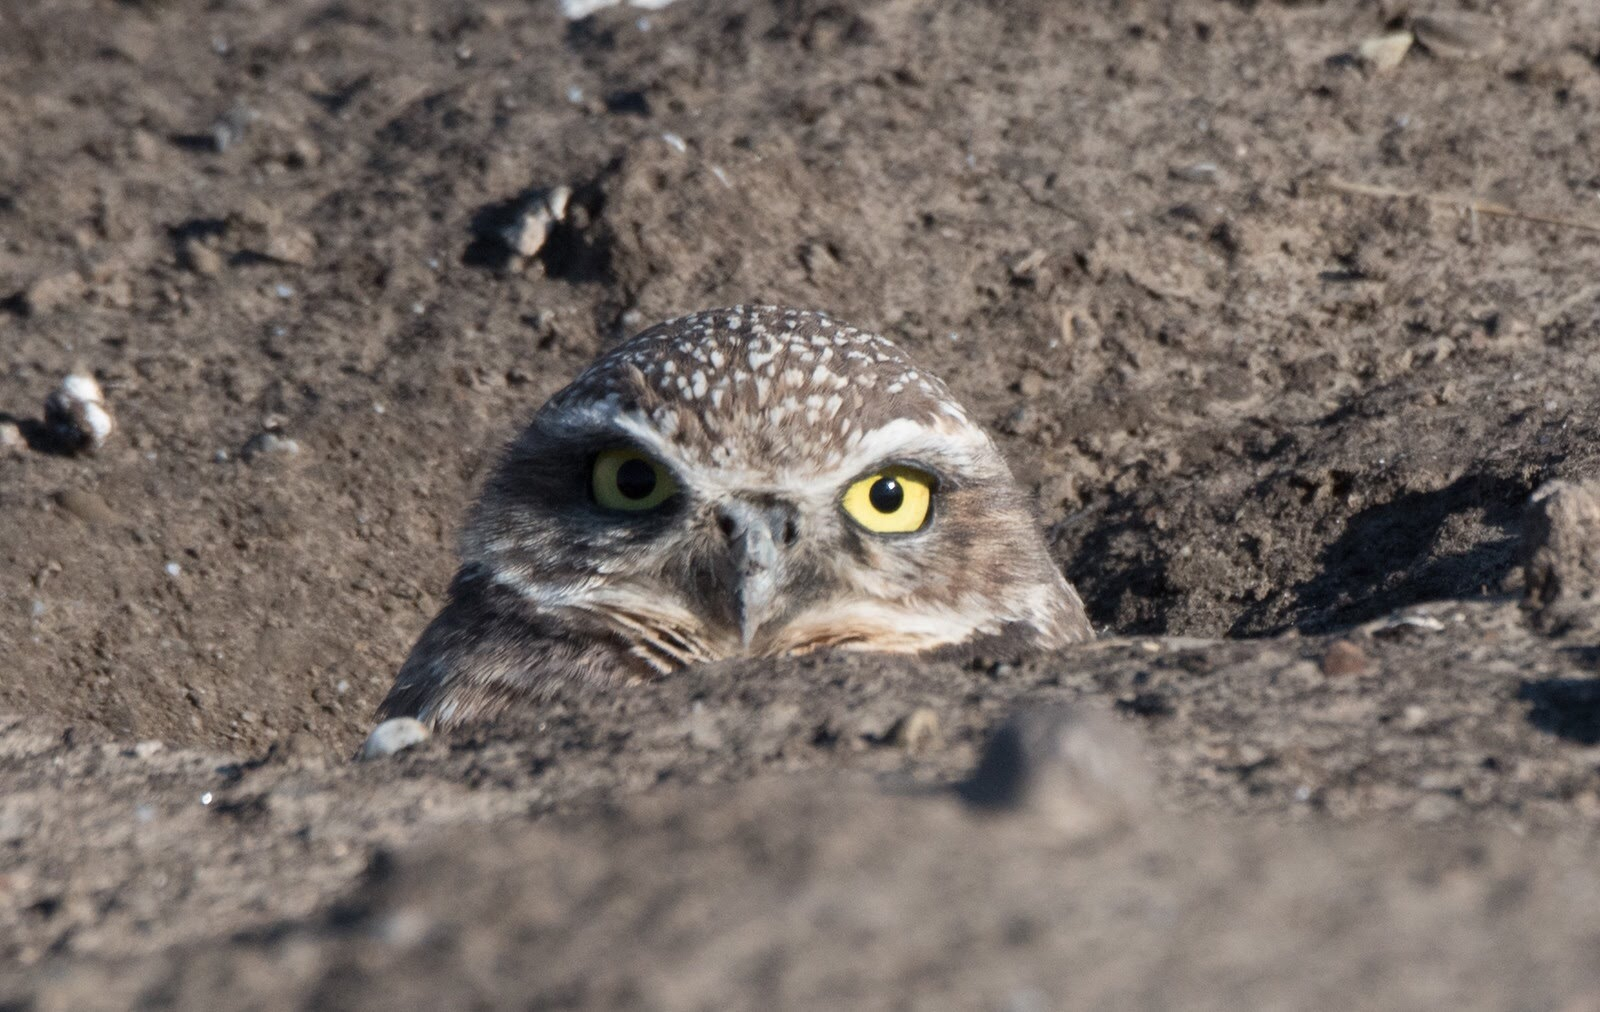 burrowing owl - eileen johnson photography.jpg